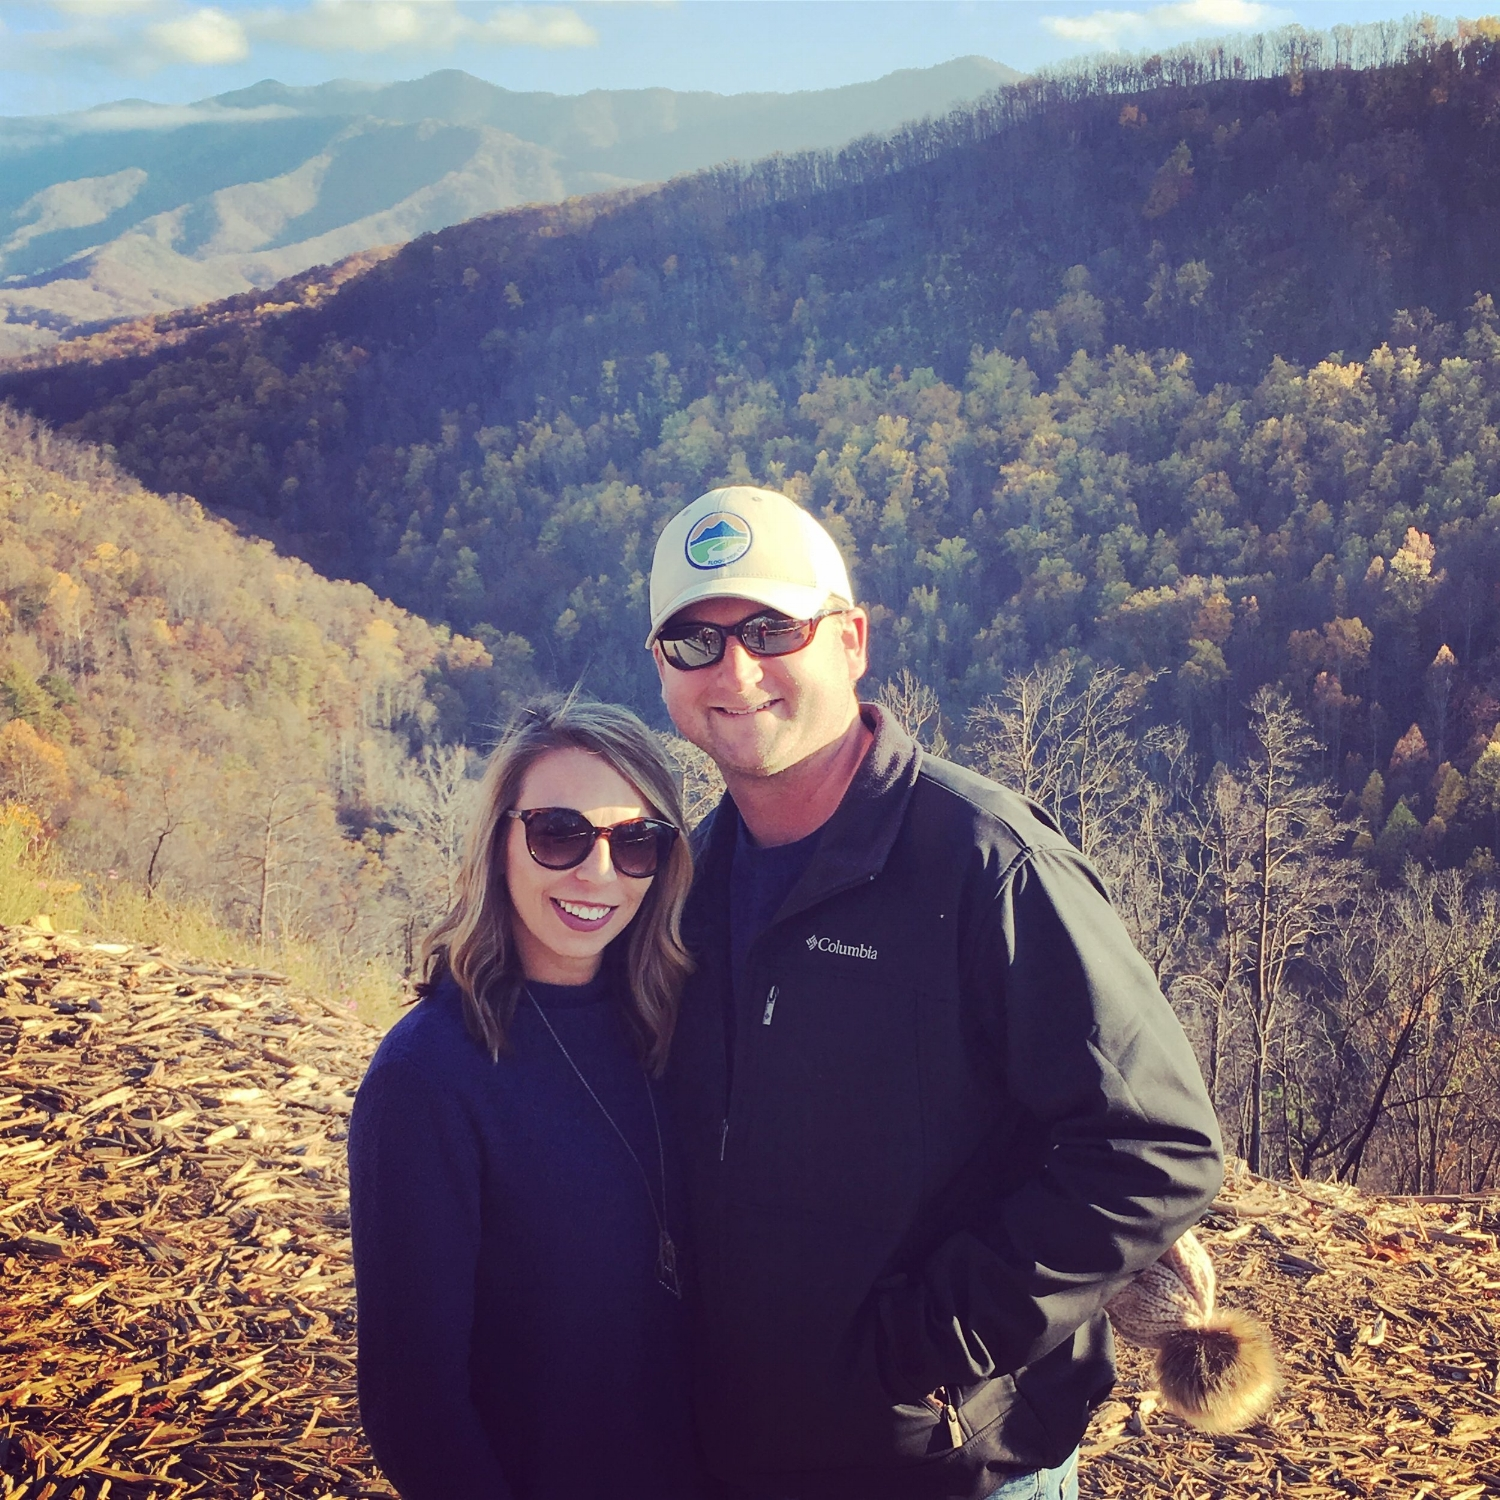 gatlinburg trip+triptothesmokymountains+Romantic getaways